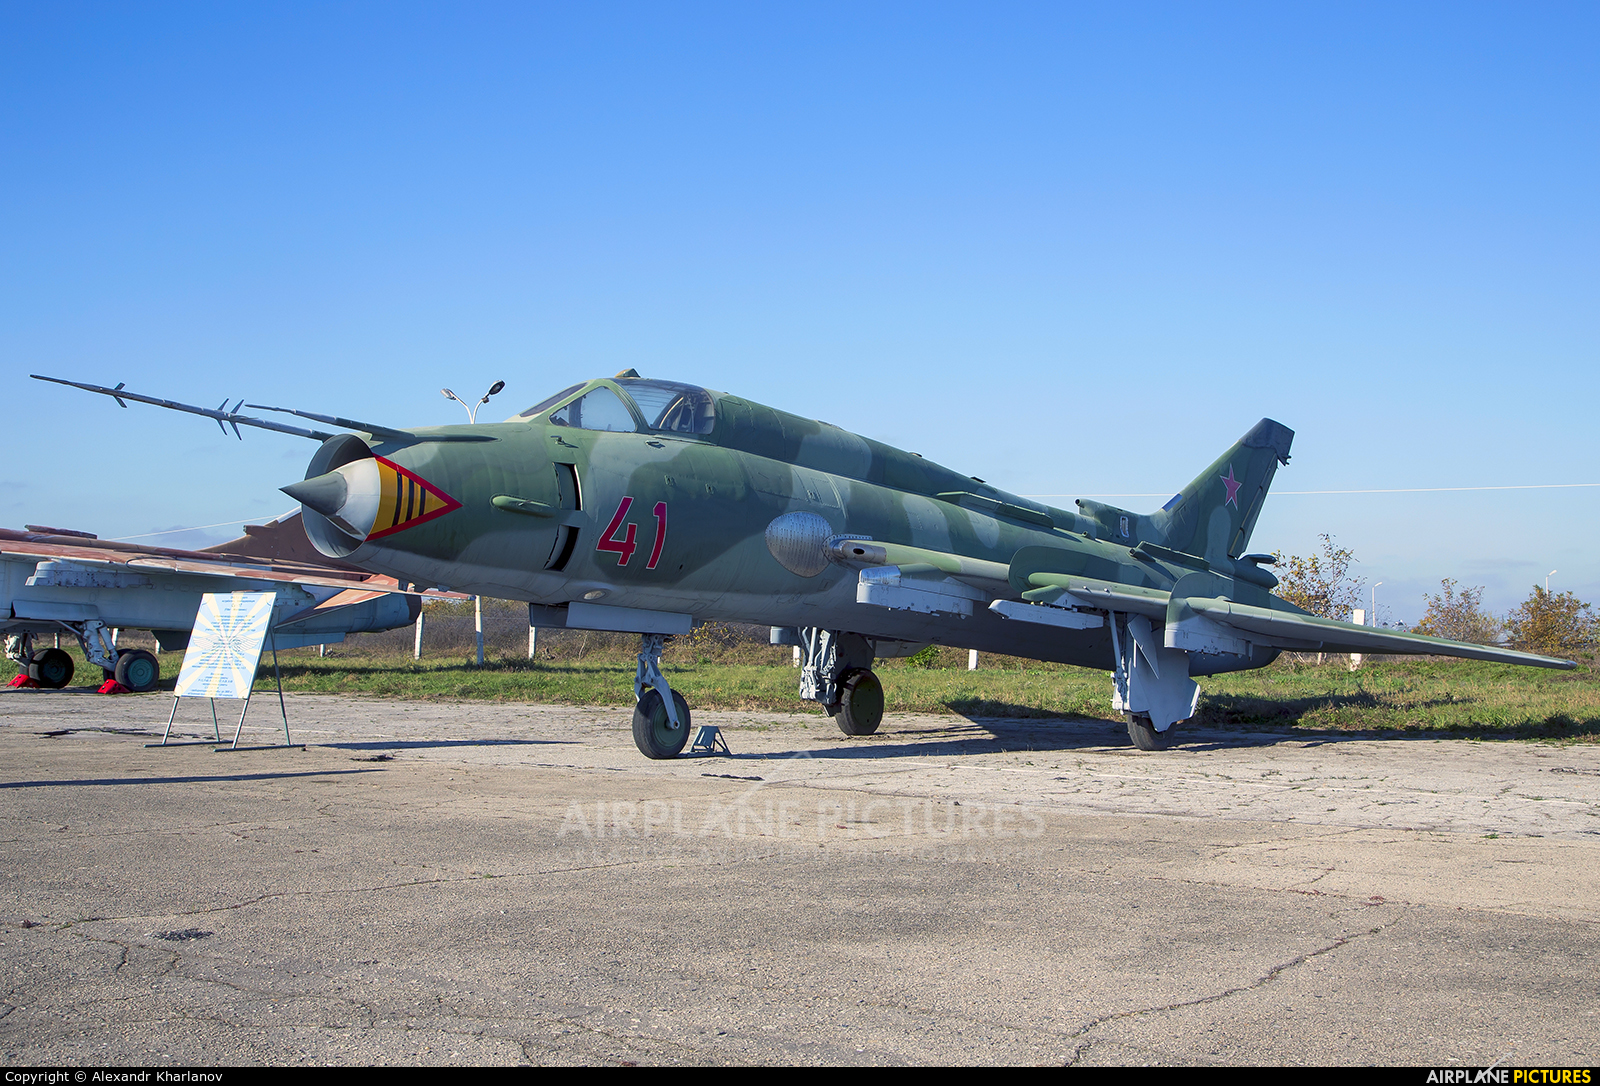 Russia - Air Force 41 aircraft at Krasnodar Tsentralny